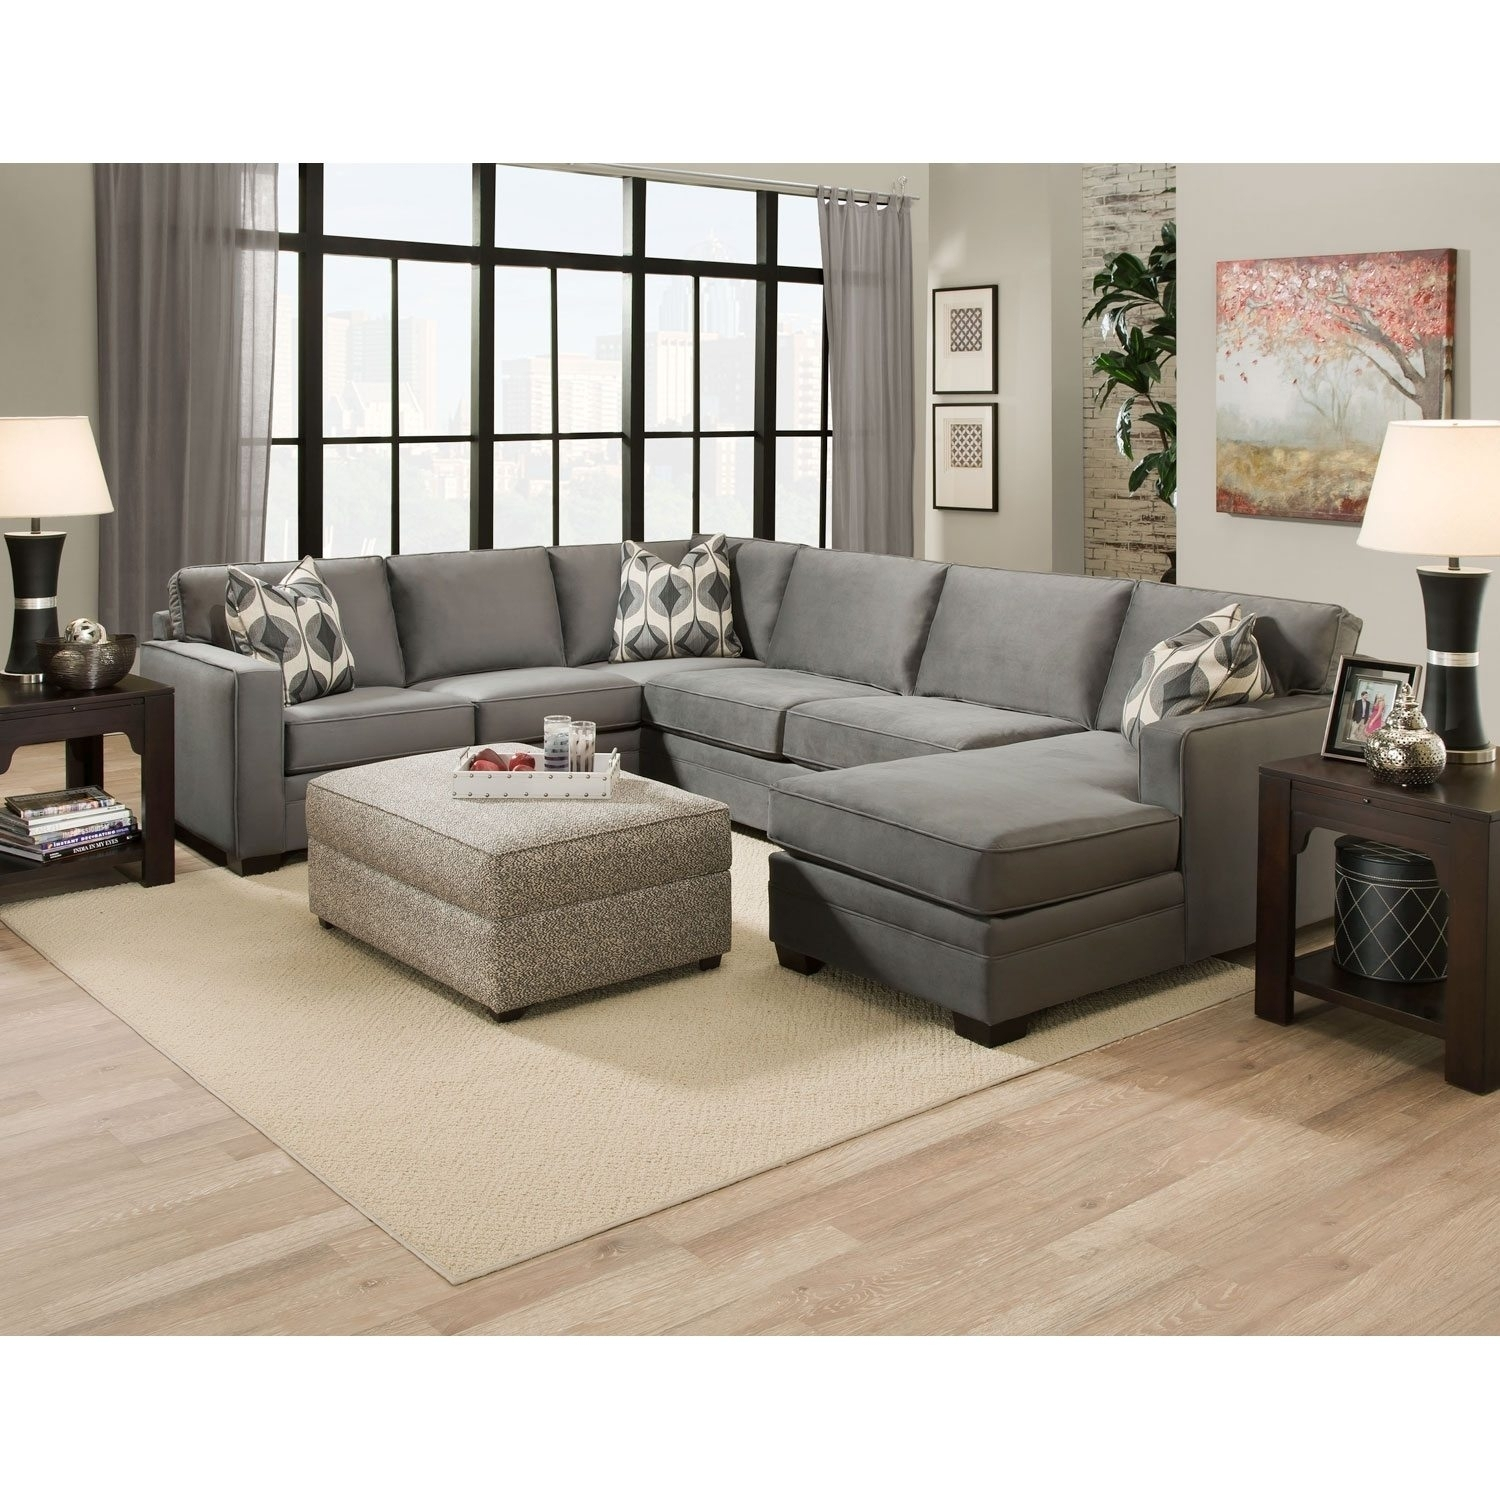 Lane Sectionals Sofas Sam's Club • Sectional Sofa Intended For Sams Club Sectional Sofas (Image 4 of 10)